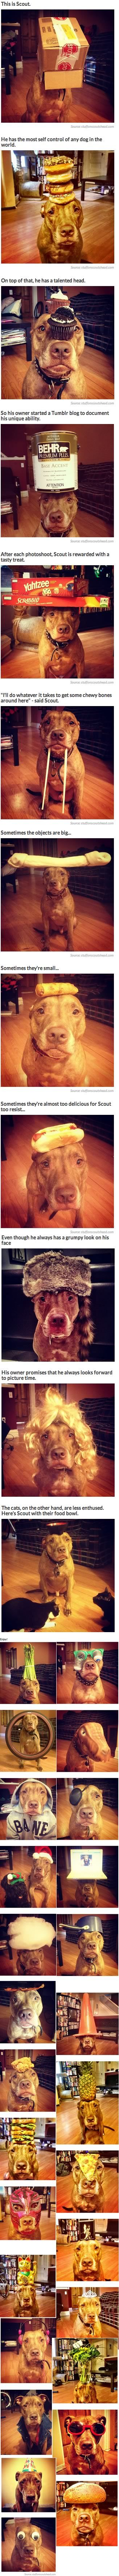 This Dog Can Balance Anything On His Head. You'll Burst Out Laughing Till You Cry At What His Owner Has Tried… LOL!